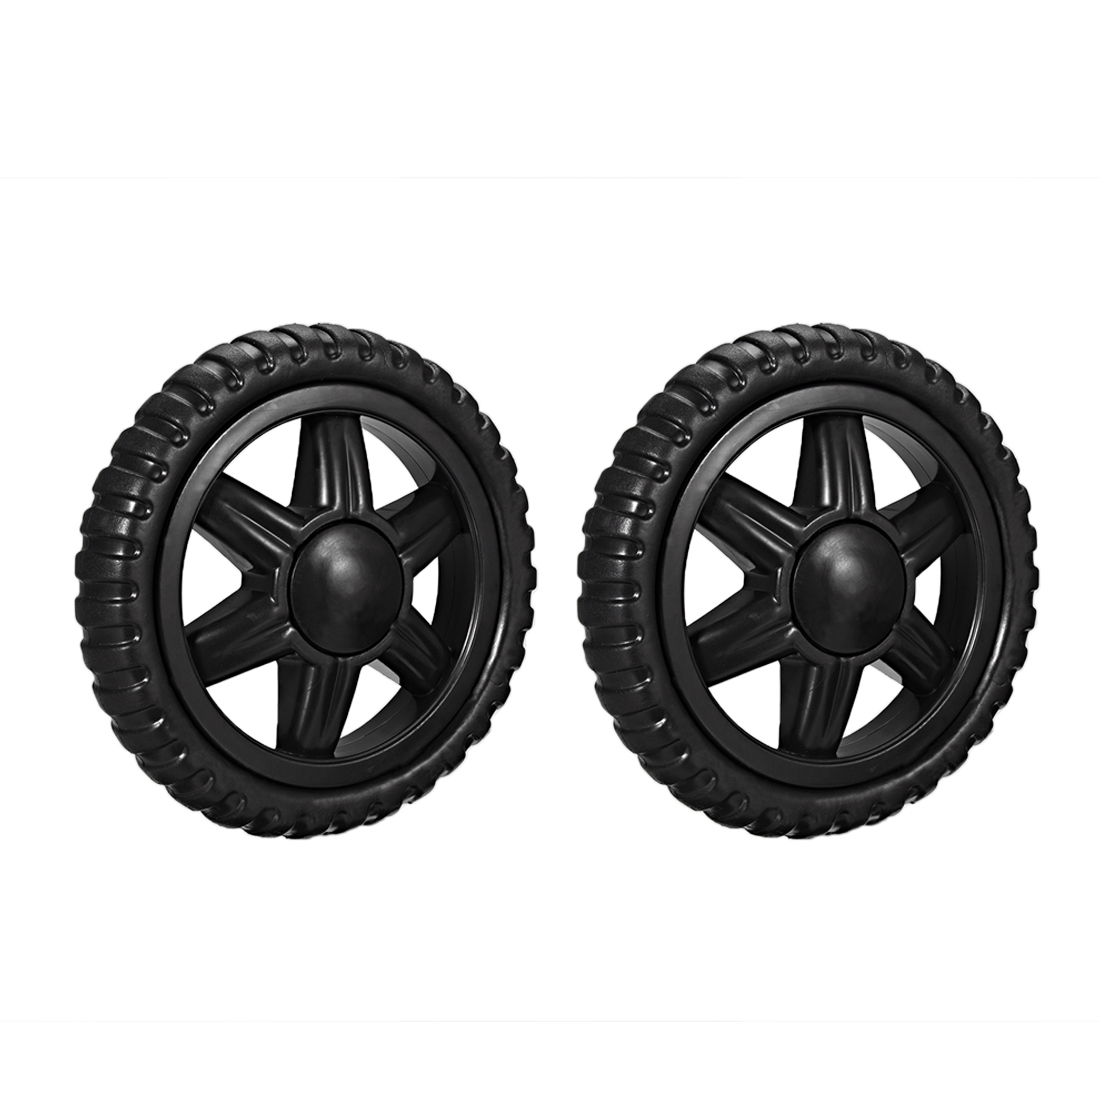 Uxcell New Hot 2Pcs Shopping Cart Wheels 5 Inch Dia Travelling Trolley Caster Replacement Rubber Foaming Black